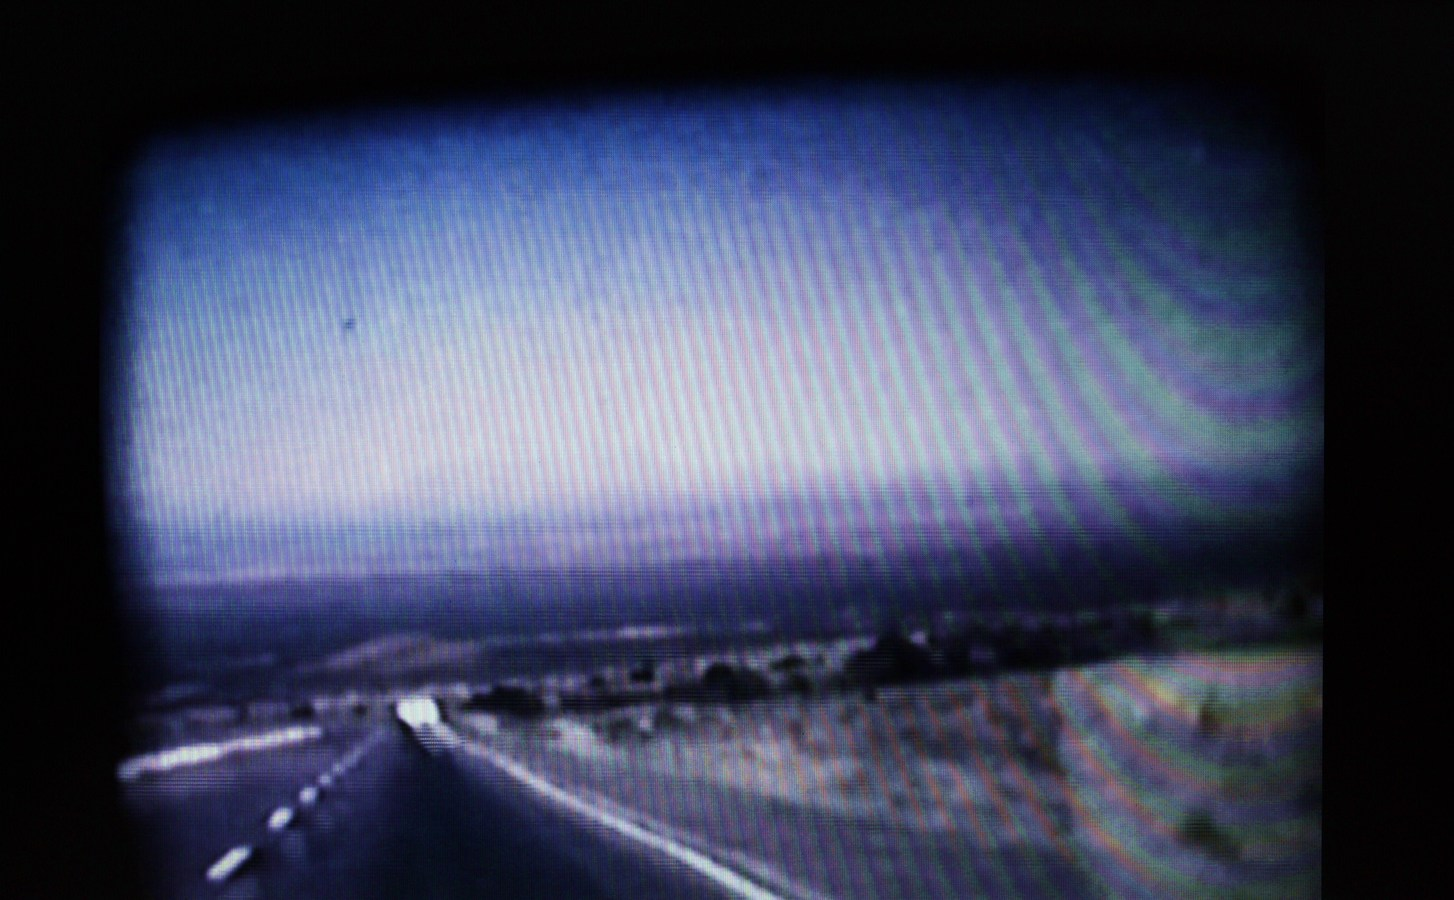 Narrative Project Still from Family Landscape (Video), Scene from I-10